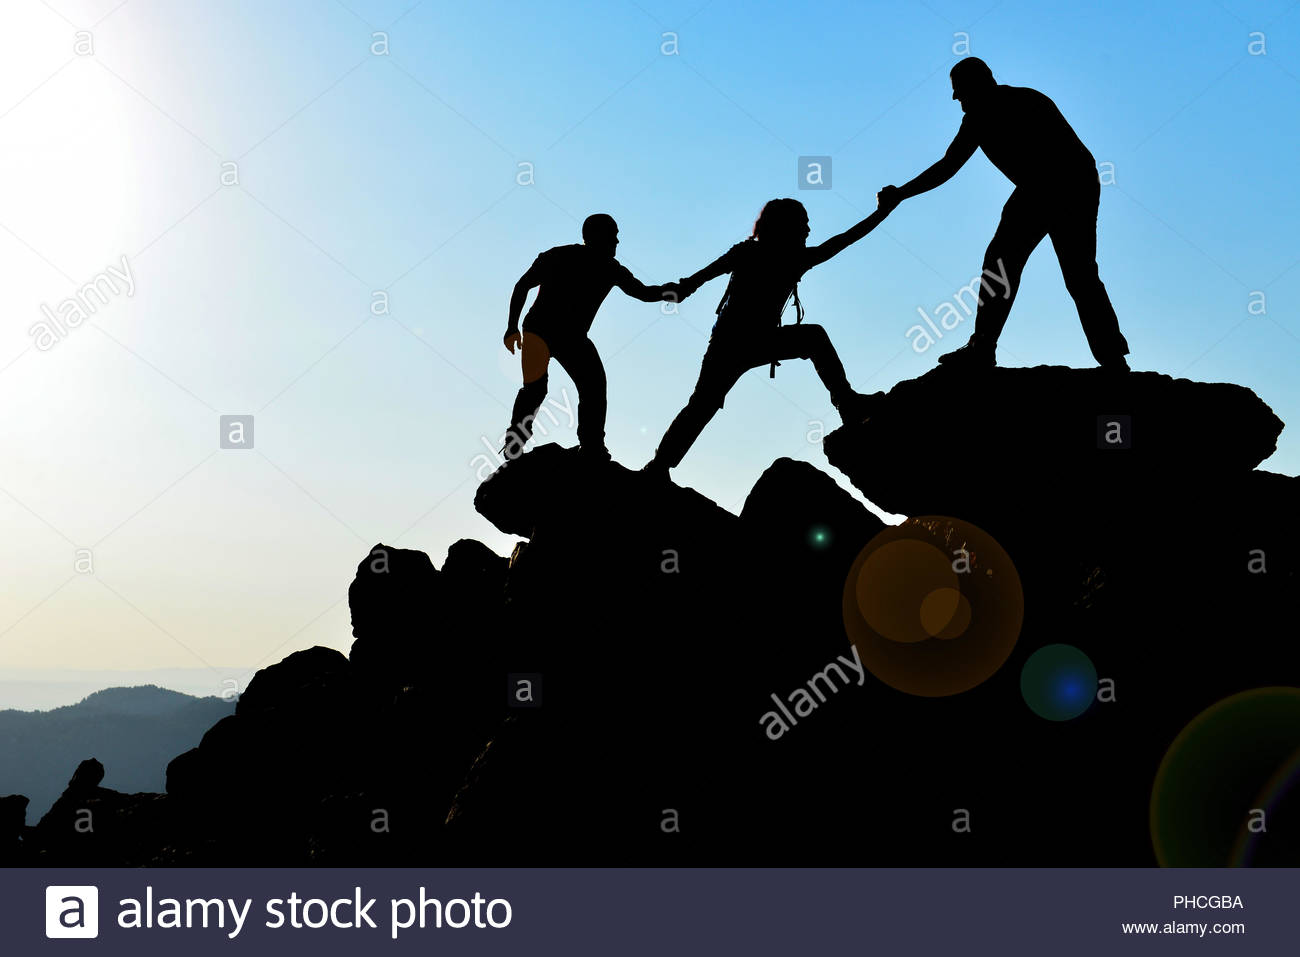 summit-focused mountaineers - Stock Image